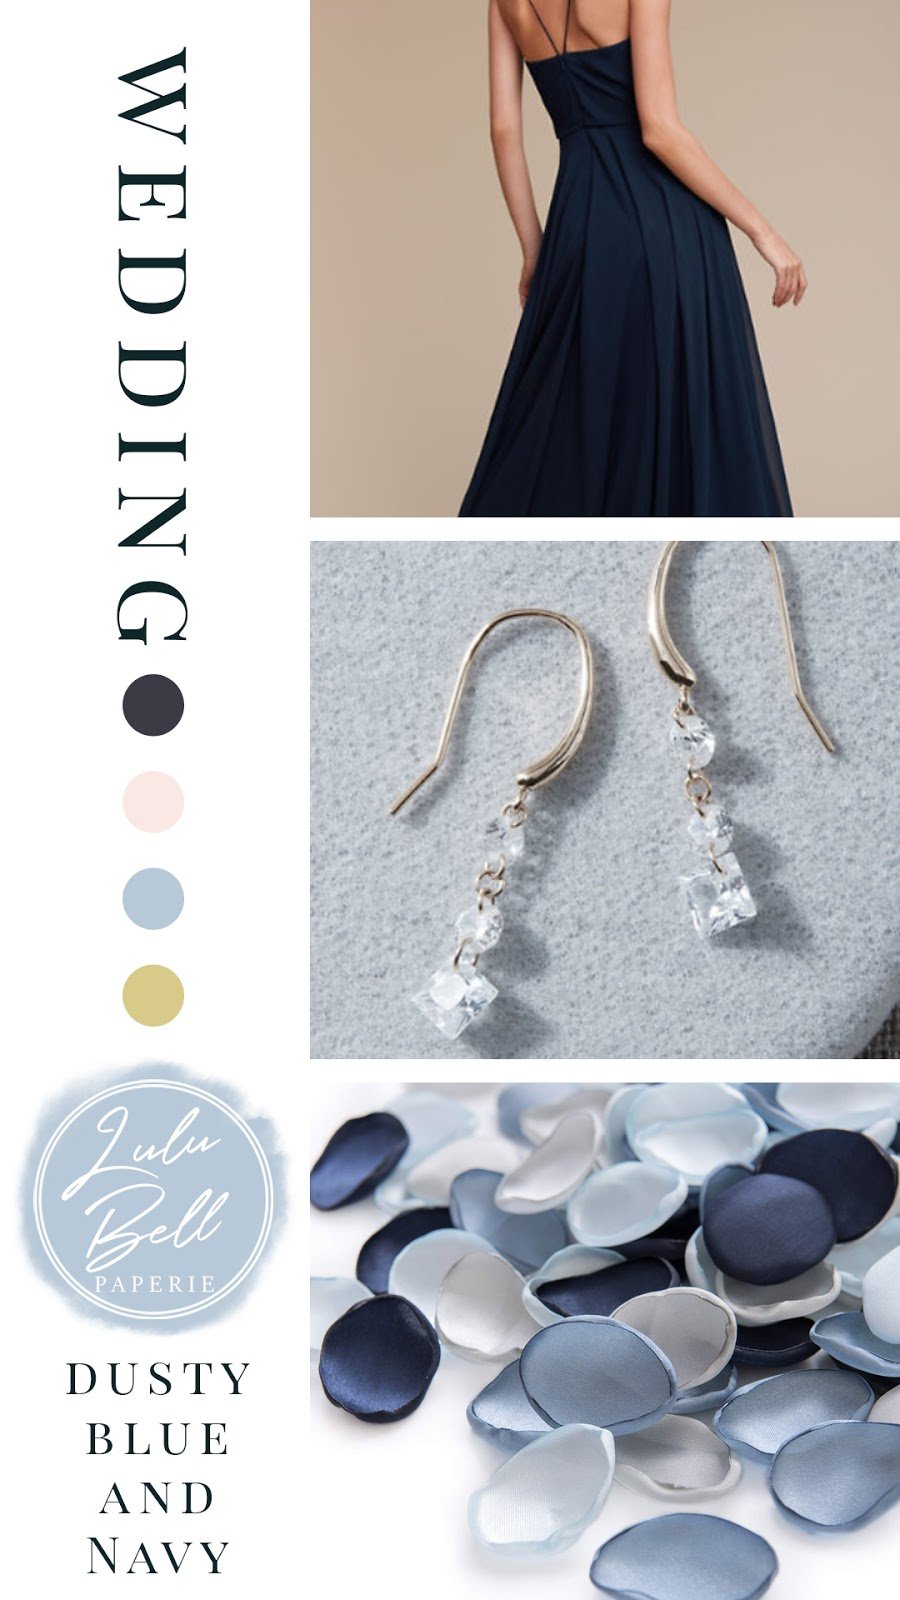 Dusty Blue, Blush Pink, and Navy Wedding Color Palette Inspiration